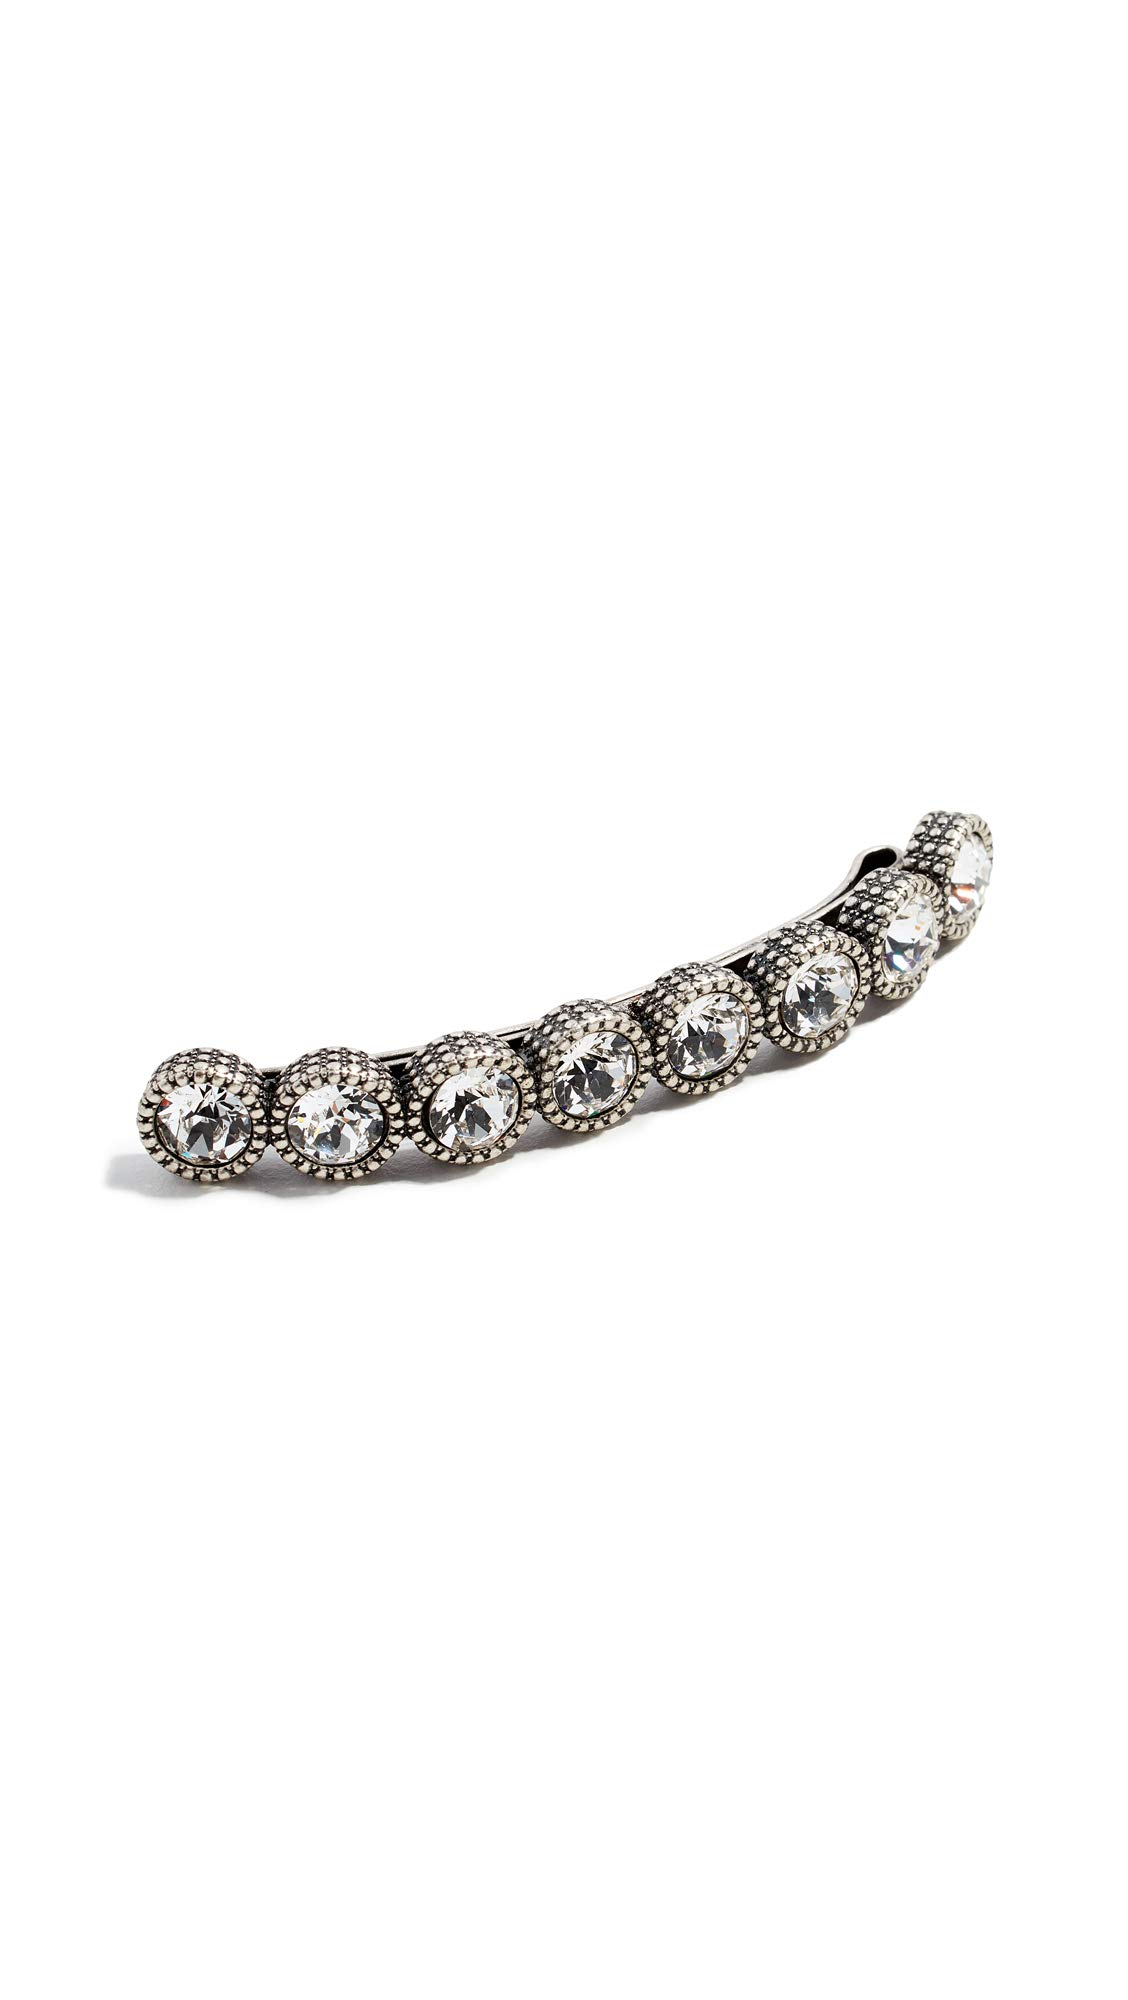 Marc Jacobs Women's Crystal Barrette, Crystal/Silver, One Size